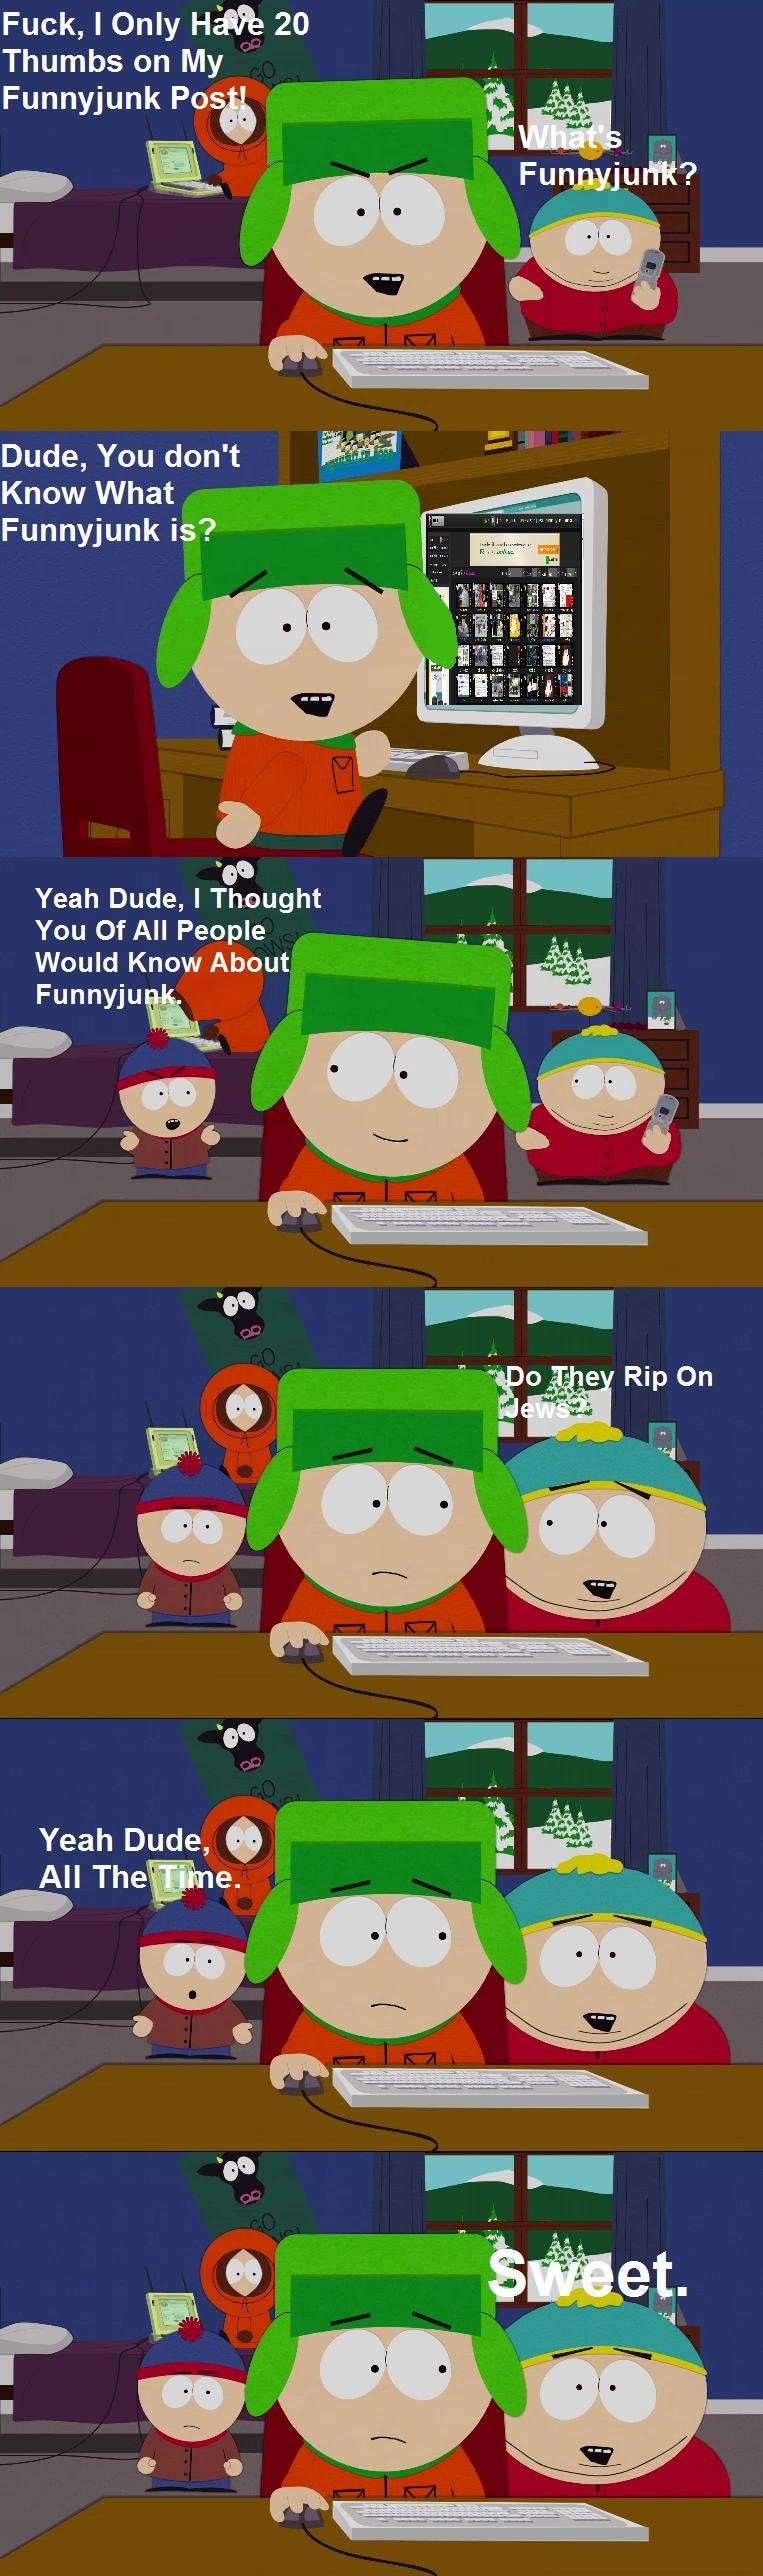 A South Park Comic. OC<br /> #11 Of The Cartoon Comic Series<br /> Front Page!! Thank You Guys<br /> This Is My Comment With The Most Thumbs!&